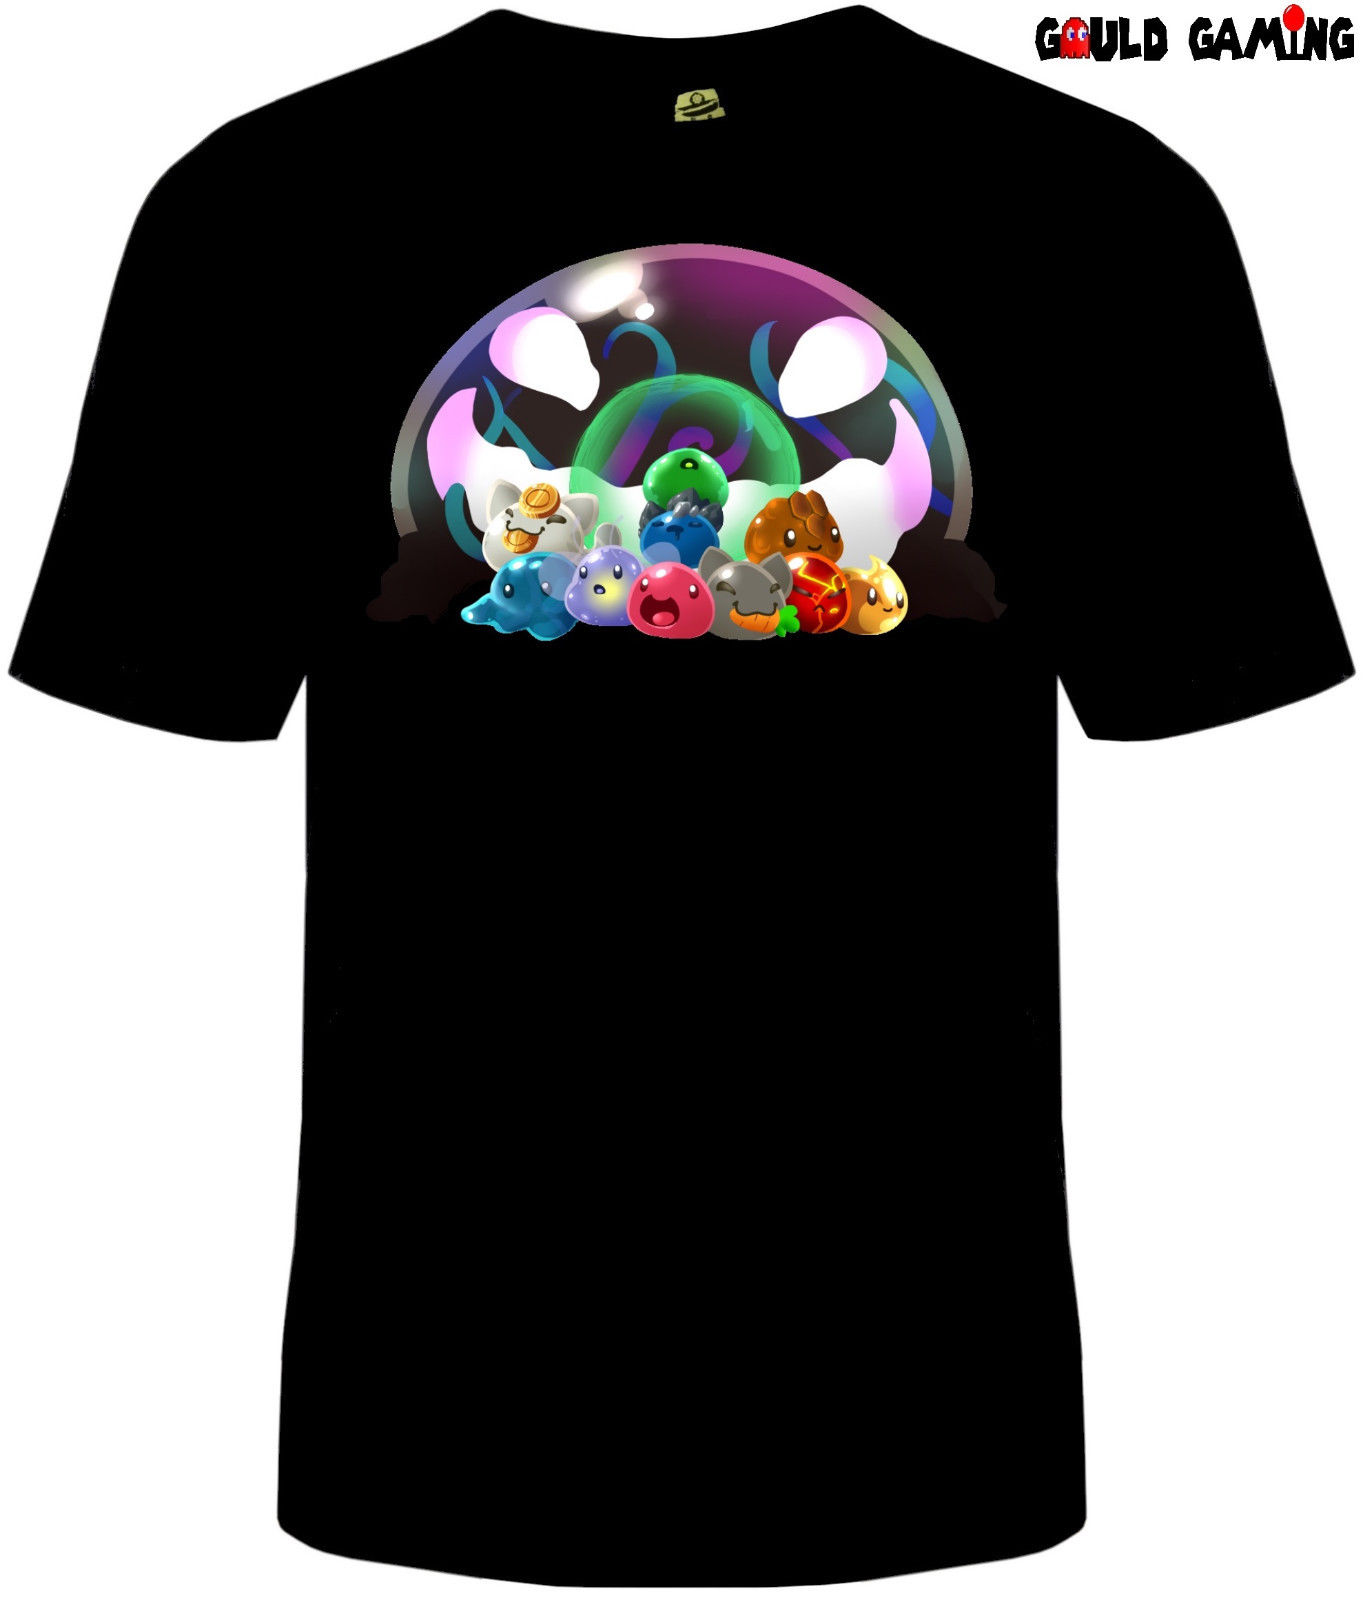 <font><b>Slime</b></font> <font><b>Rancher</b></font> T-<font><b>Shirt</b></font> Unisex Mens Cotton <font><b>Slimes</b></font> Tarr Video Game free shipping Unisex Casual gift image